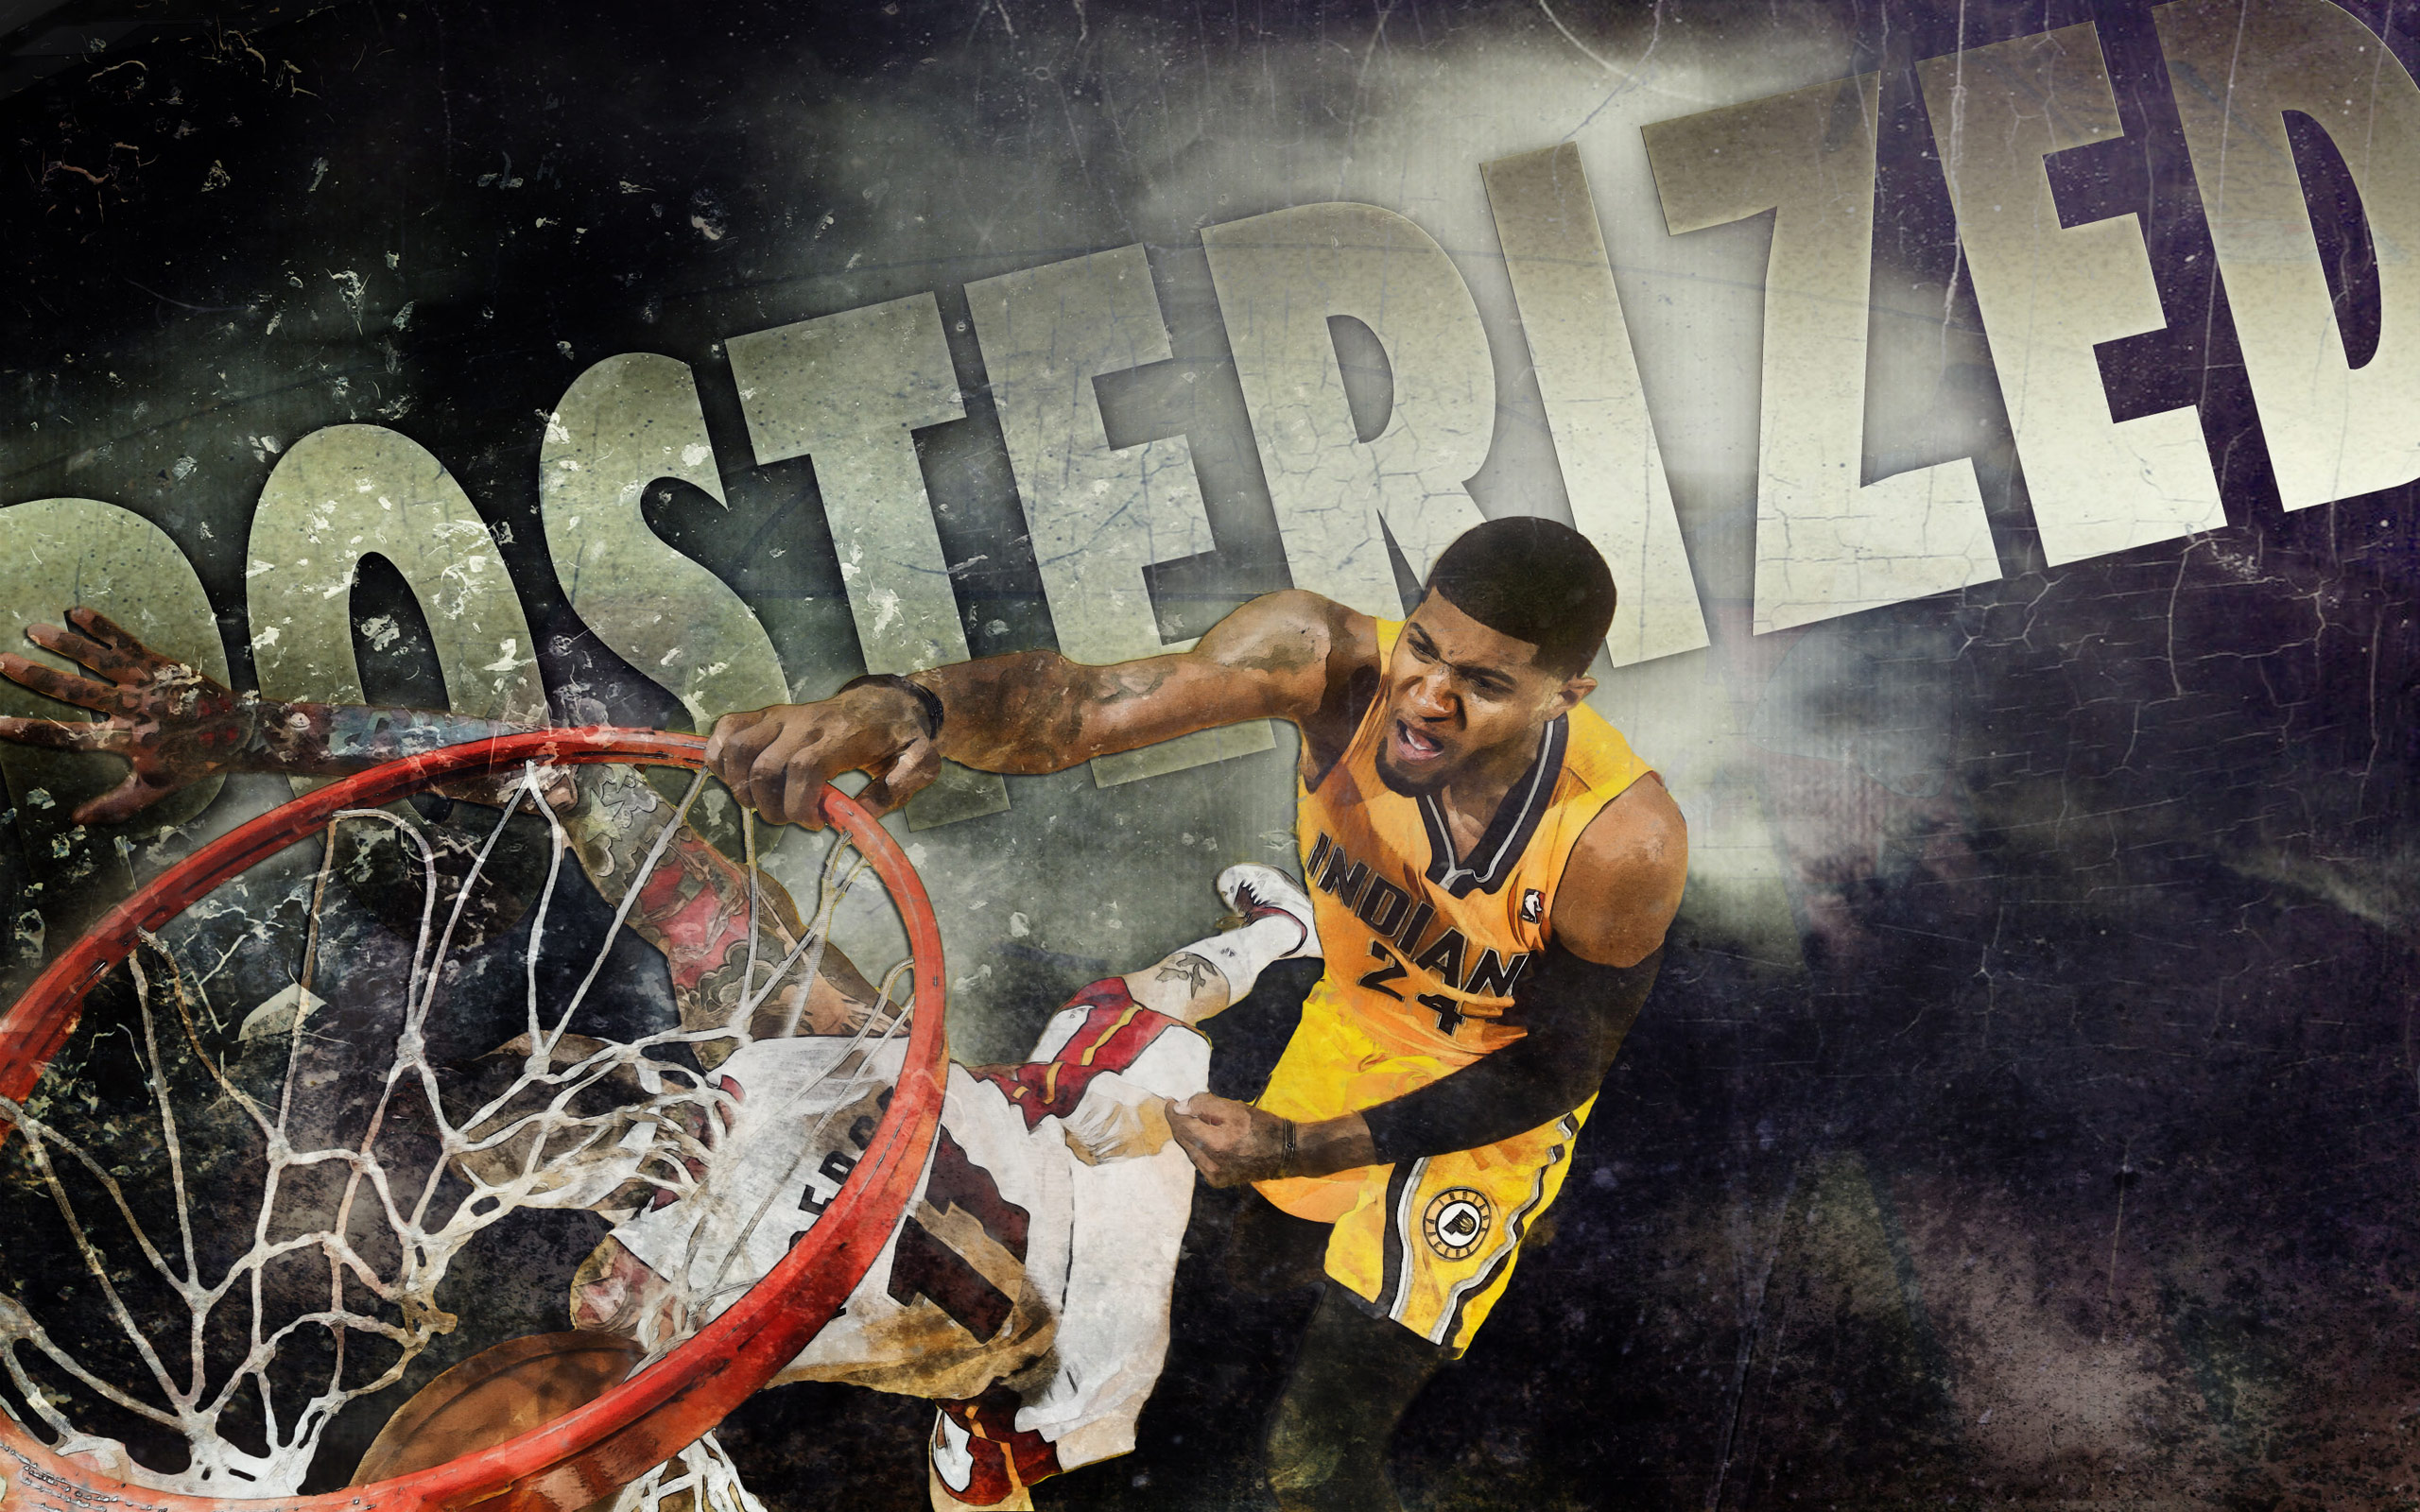 Paul george dunk over birdman 2013 25601600 wallpaper basketball paul george dunk over birdman 2013 25601600 wallpaper voltagebd Image collections